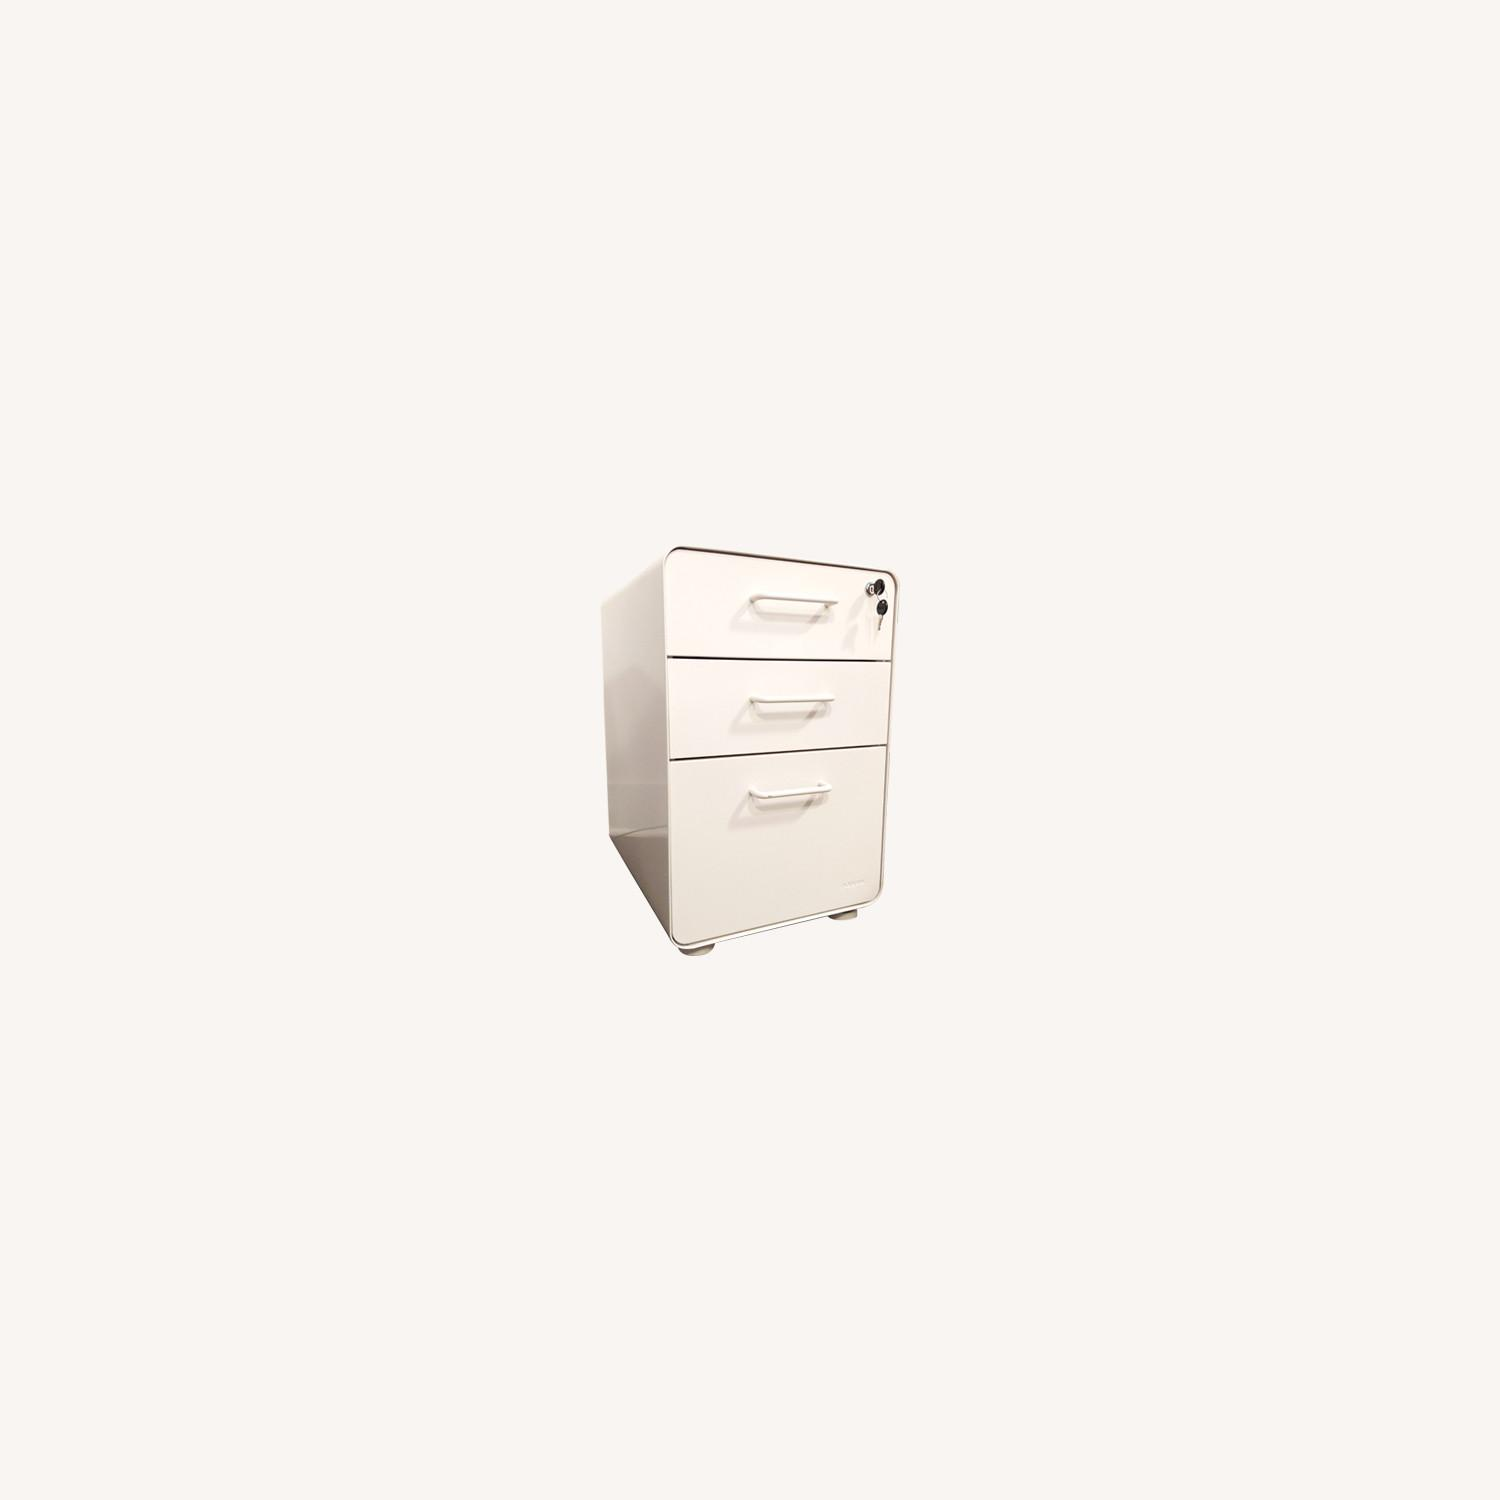 Poppin White Stow 3-Drawer File Cabinet - image-0